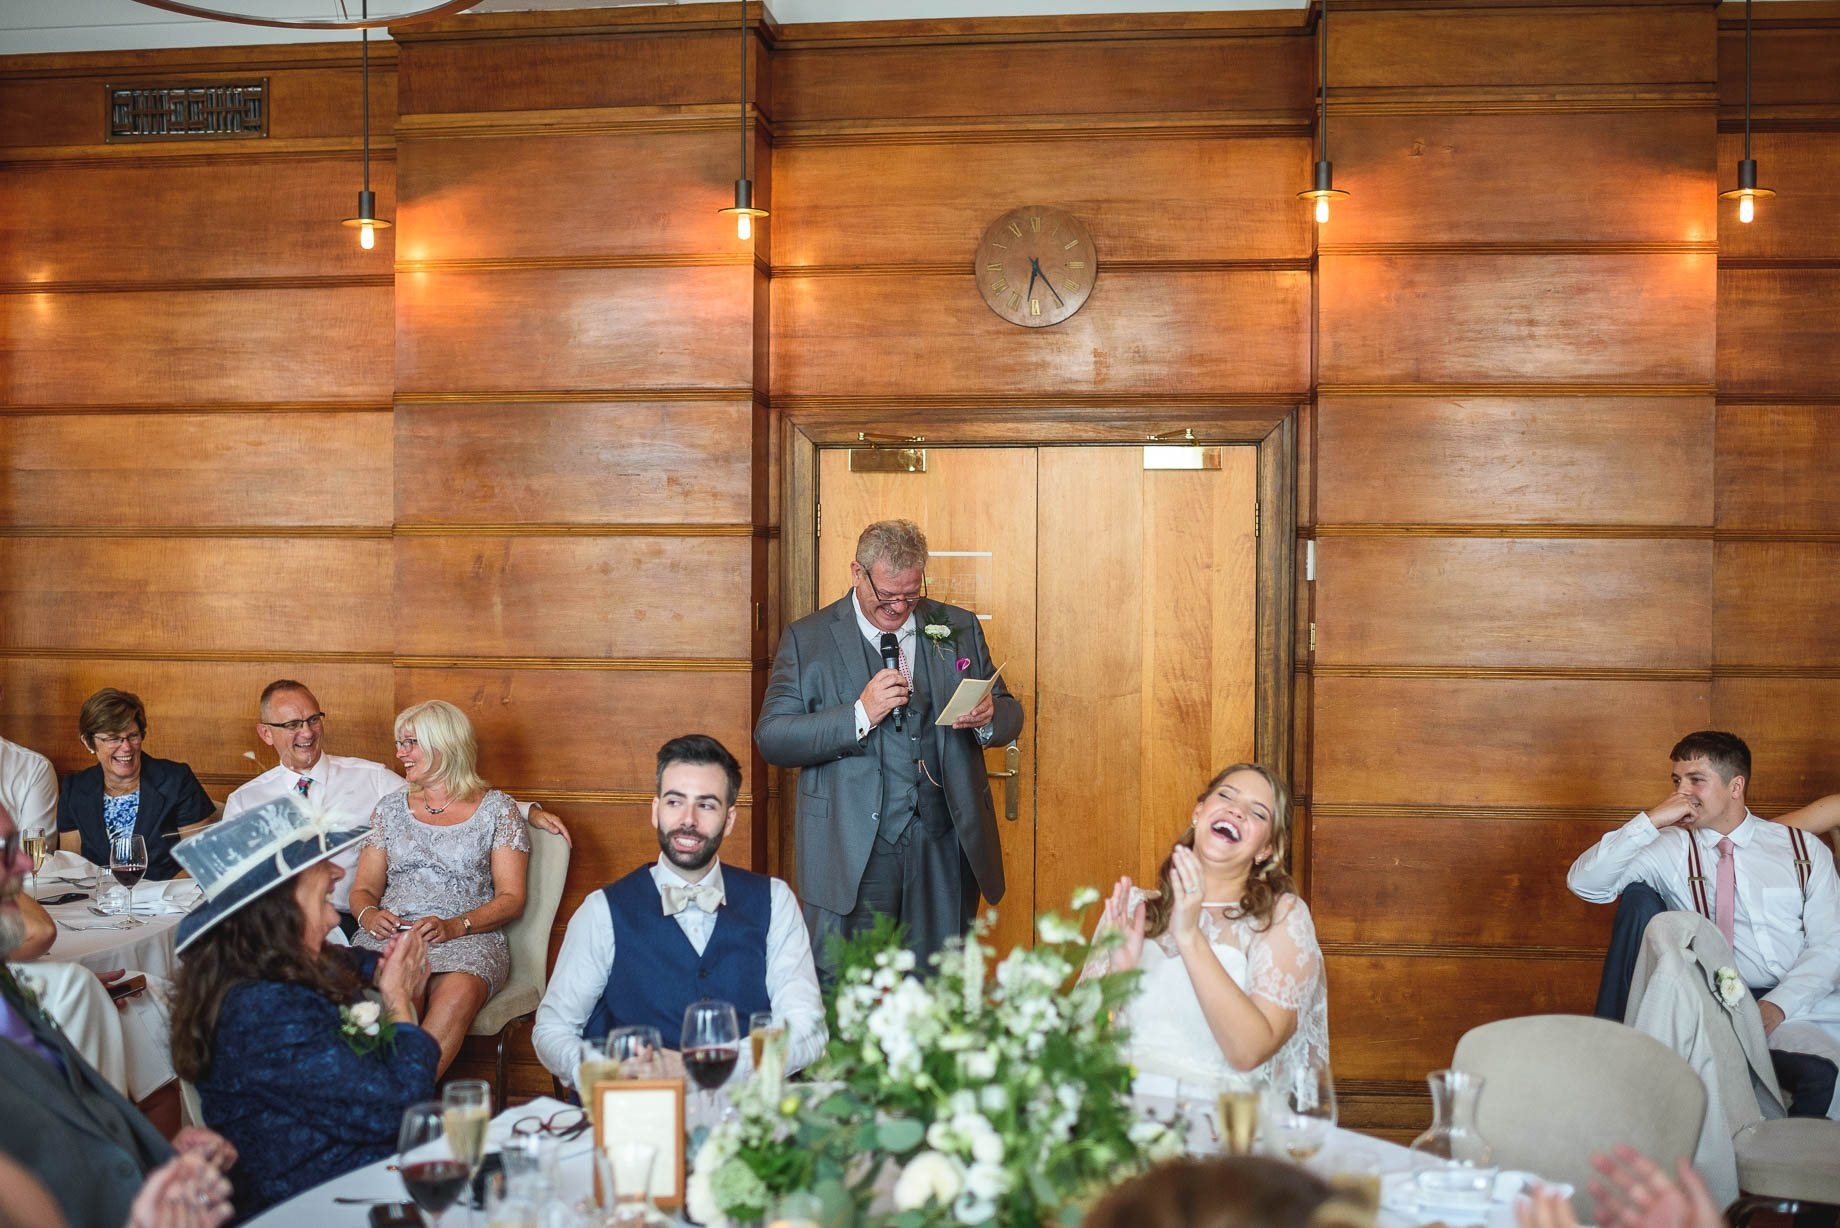 London Wedding Photography - Guy Collier Photography - LJ + Russell (108 of 155)